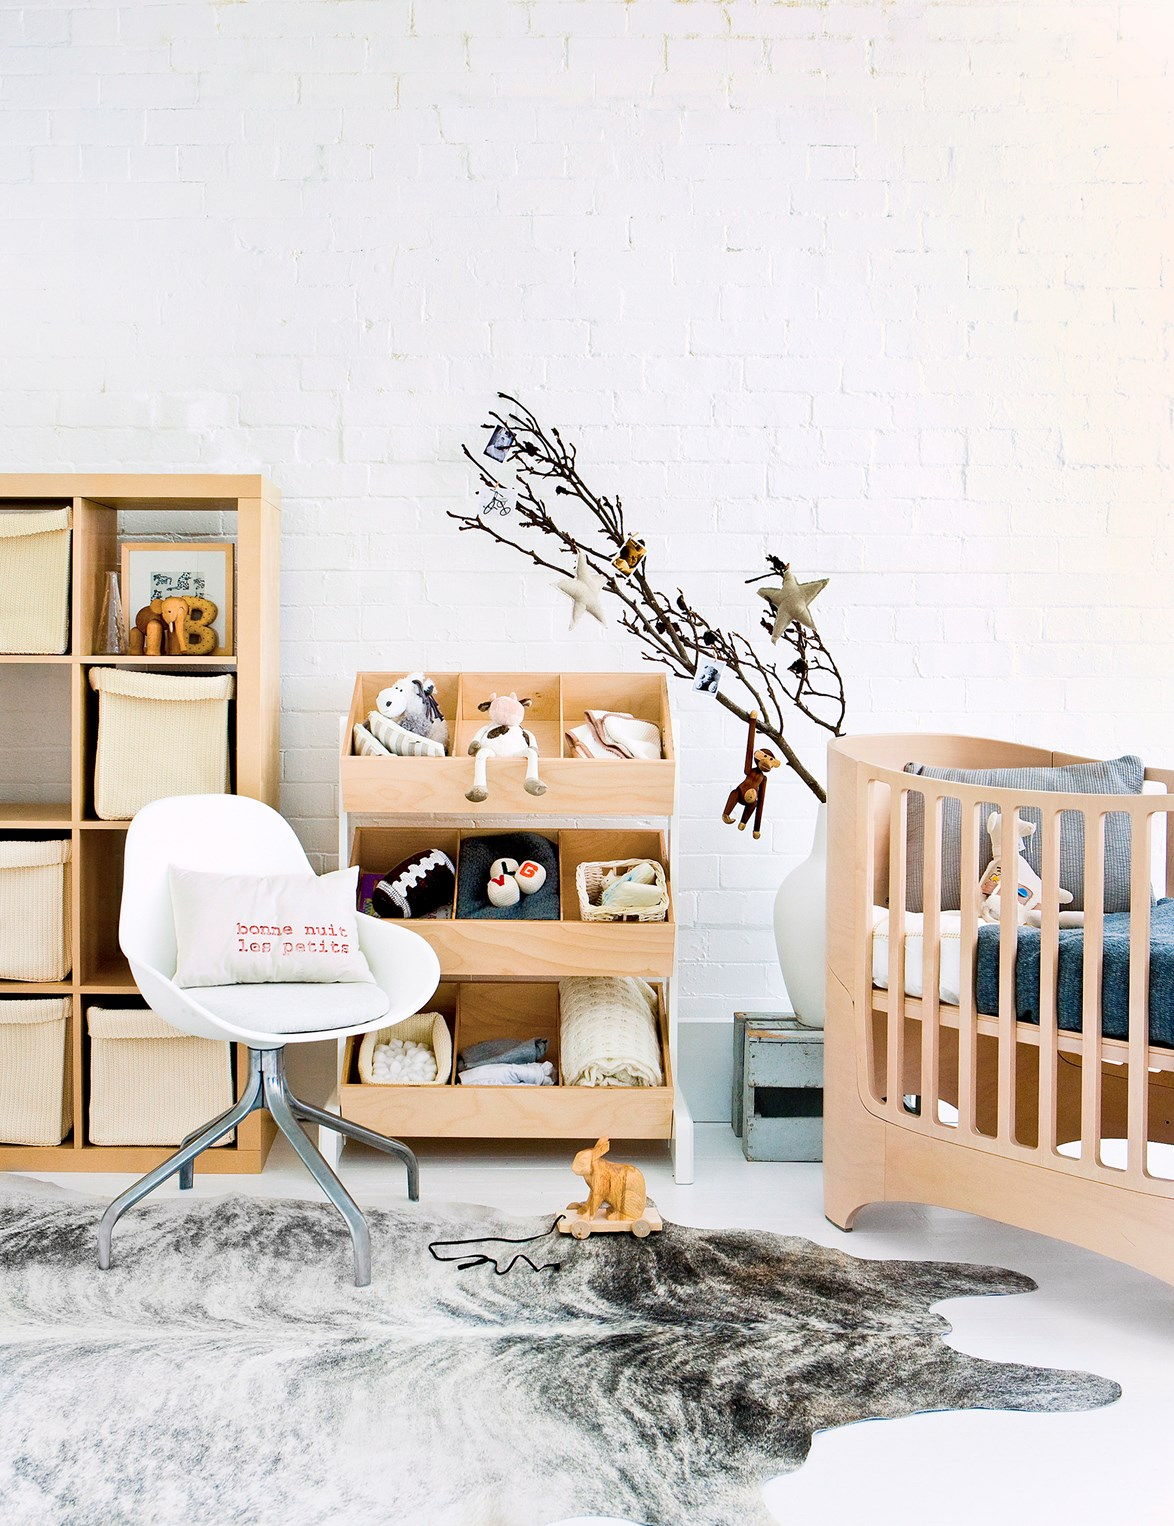 """After some stylish kids' storage ideas? [Check out these chic options](https://www.homestolove.com.au/kids-storage-furniture-13865